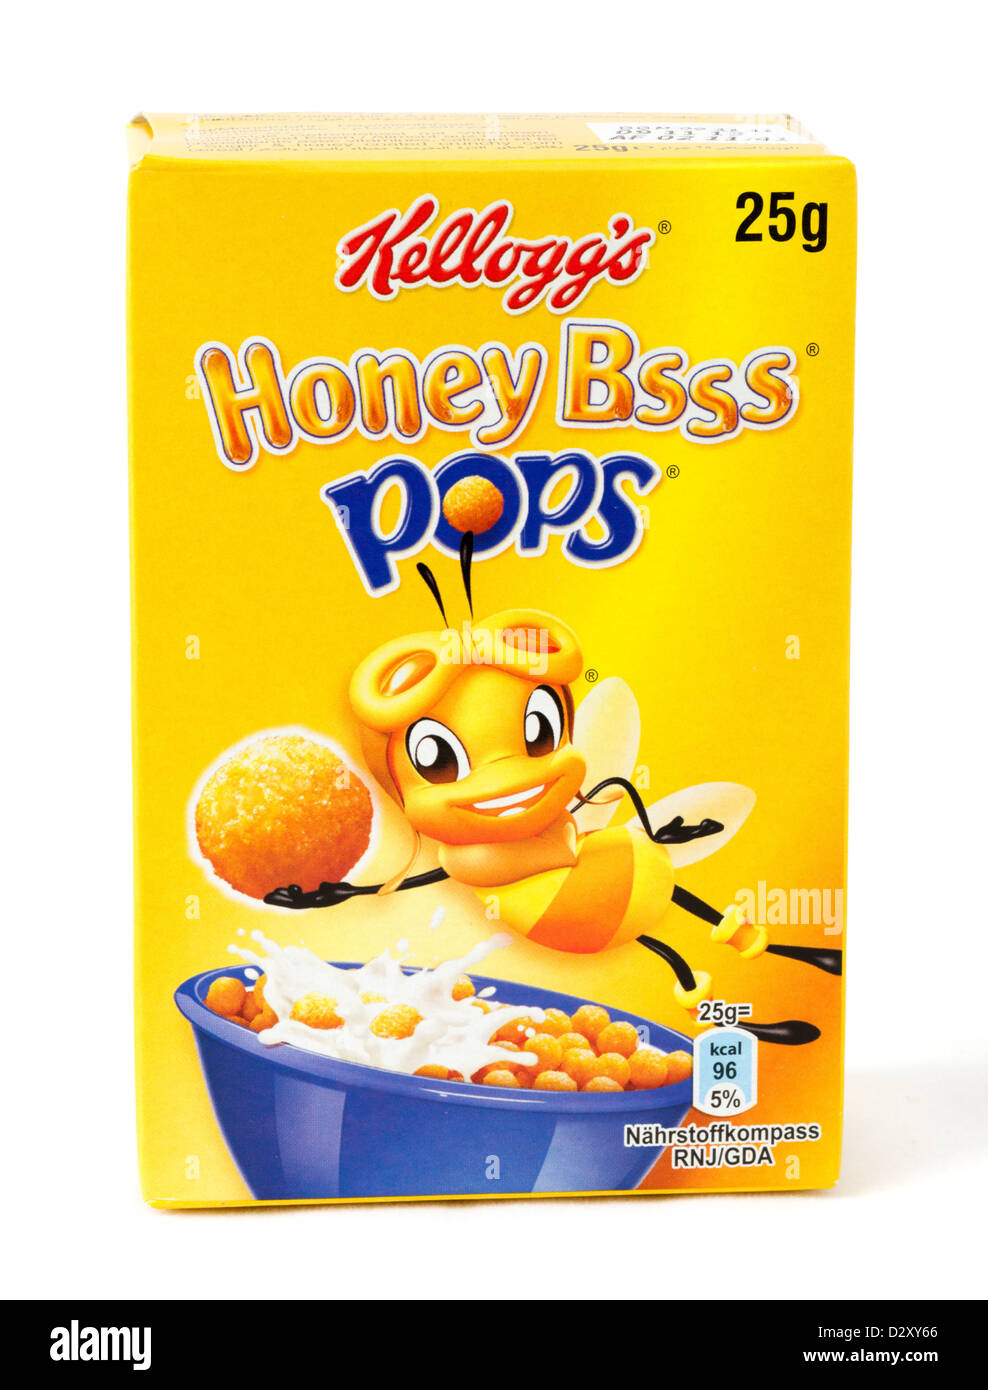 Small pack of Kellogg's Honey Bsss breakfast cereal - Stock Image